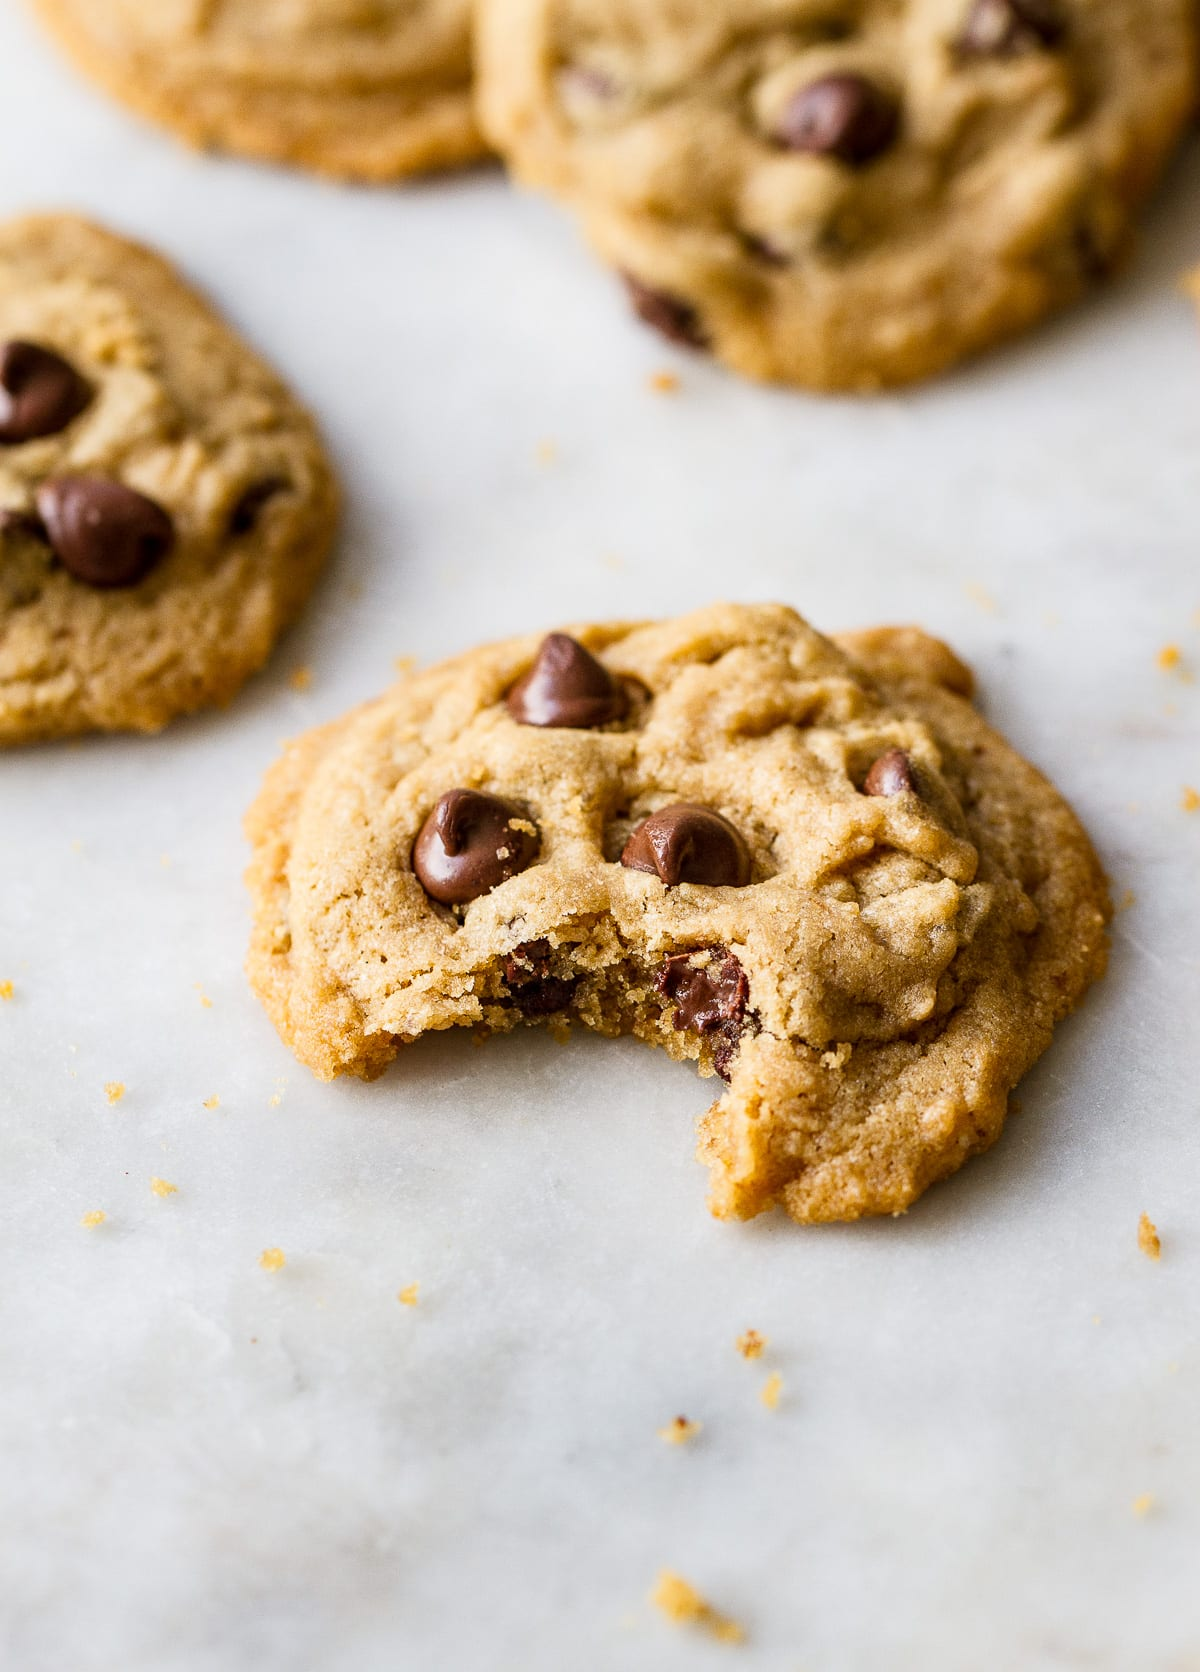 side angle view of chocolate chip cookie with bite taken.